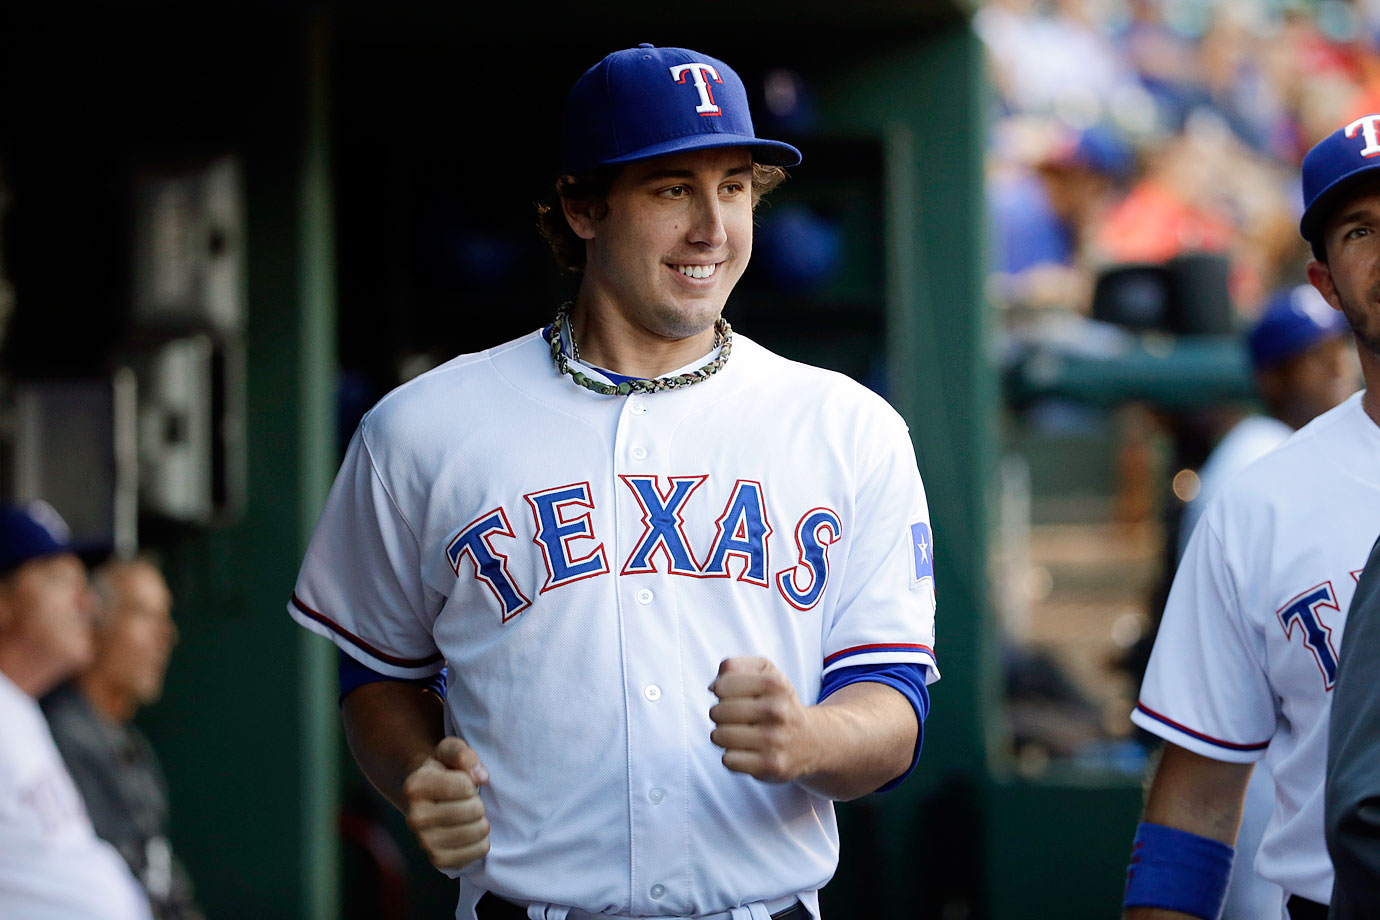 Lefthander Derek Holland says he and his fellow Rangers pass time in the bullpen by playing fart-bottle roulette.